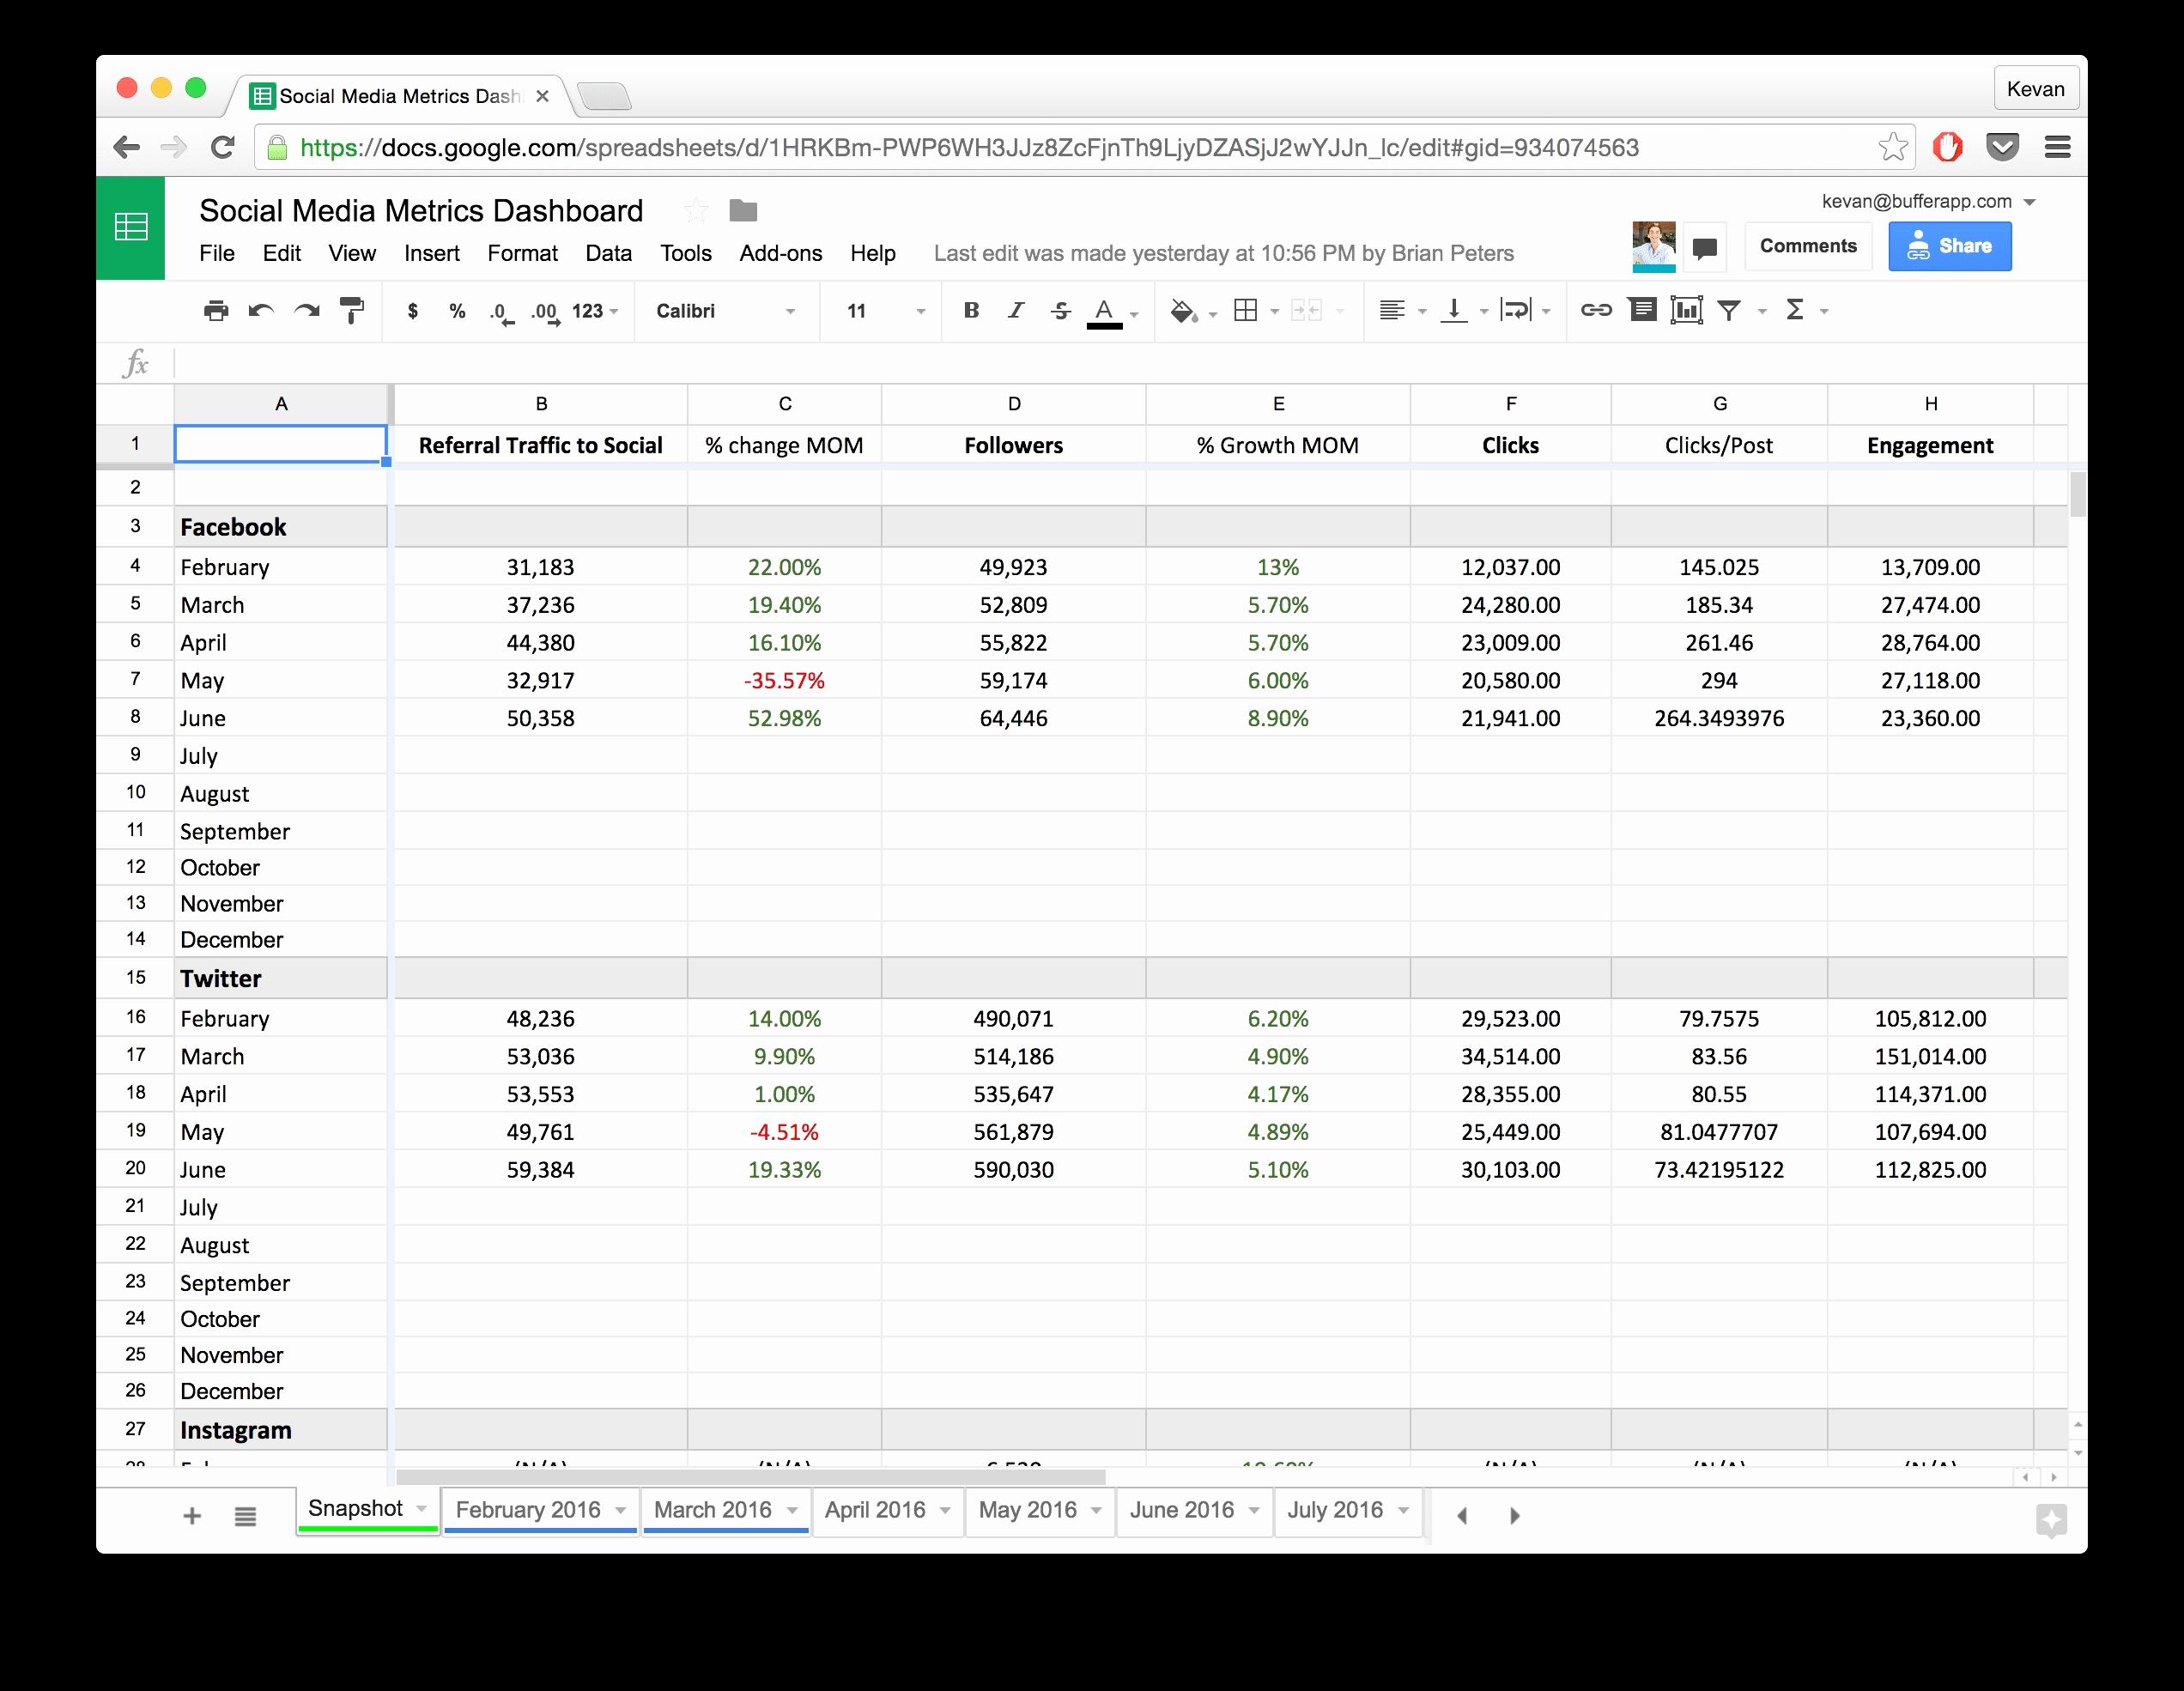 Real Estate Comparables Spreadsheet Pertaining To Real Estate Comparables Spreadsheet Luxury Free Cma New Sheet